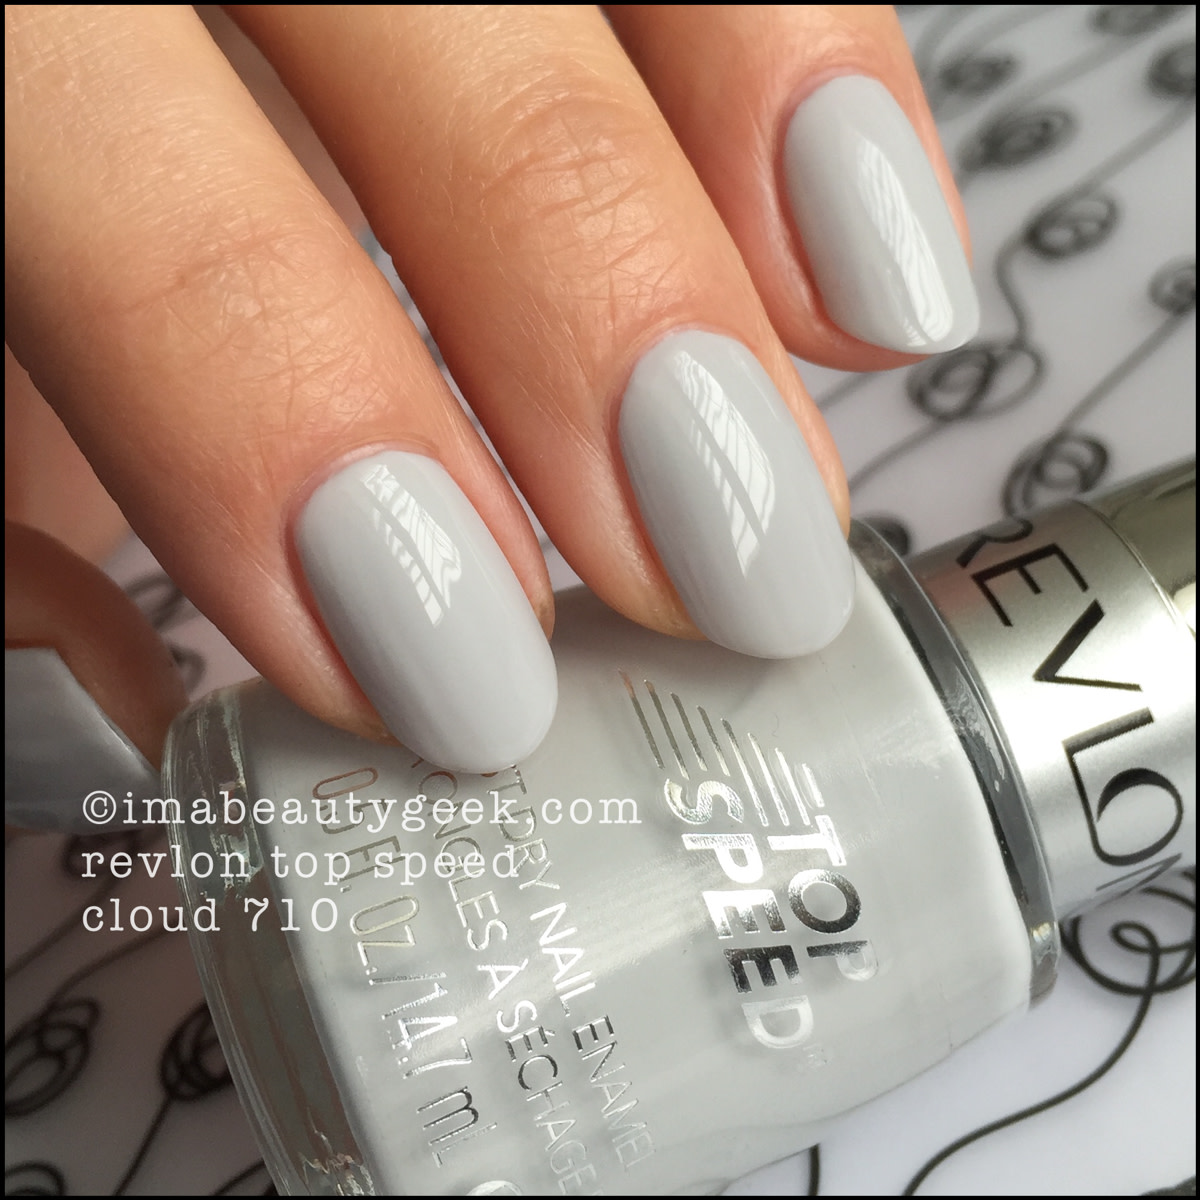 Revlon Nail Cloud 710_Revlon Top Speed Polish Cloud.jpg